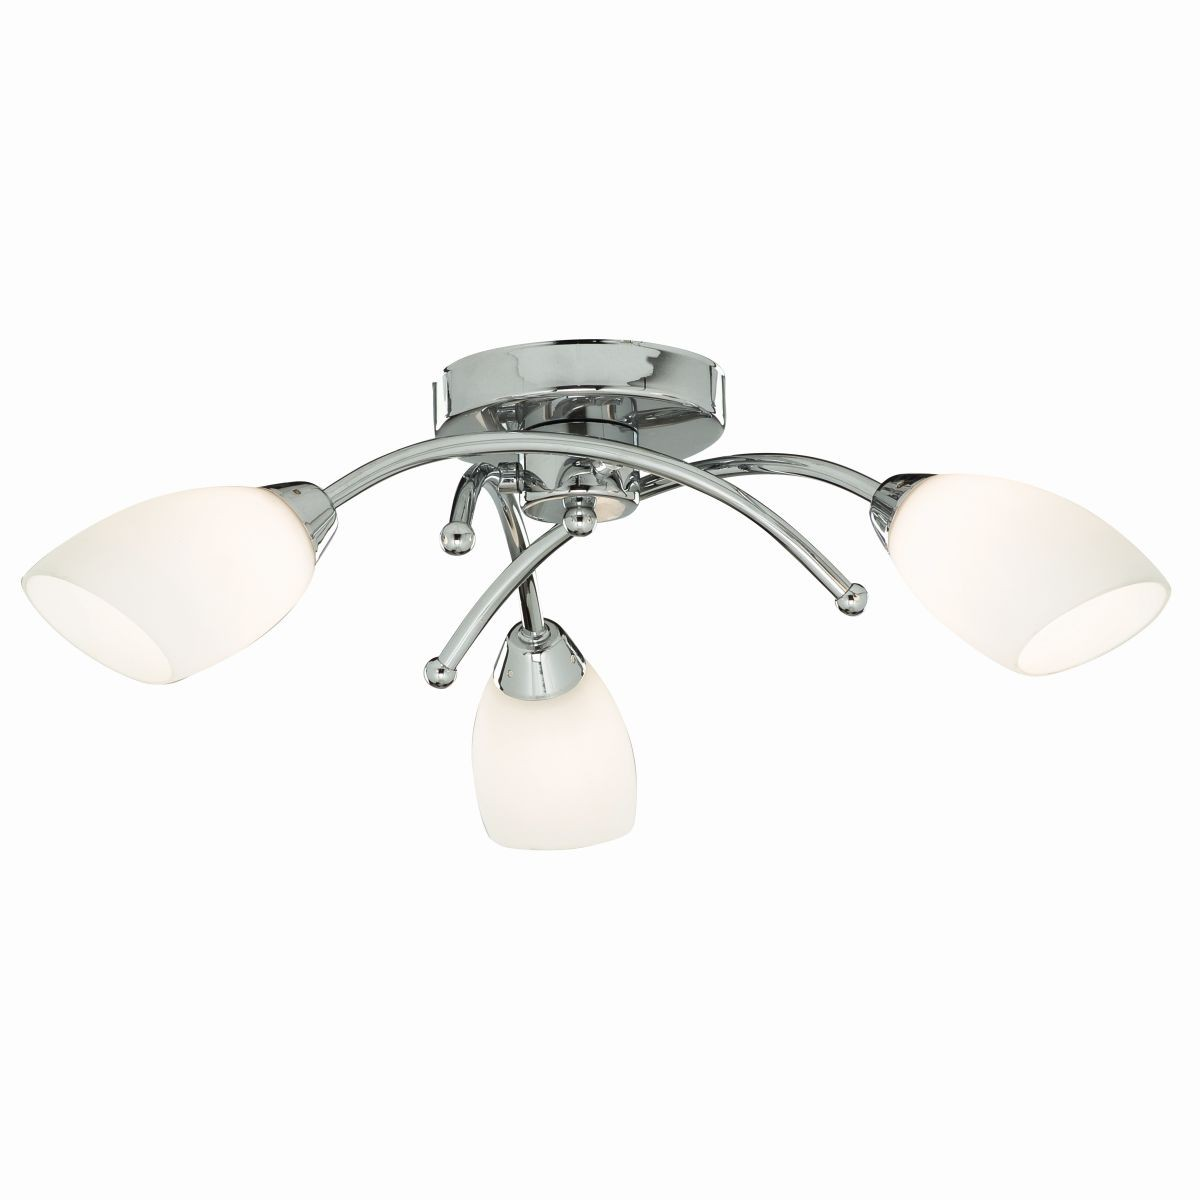 Opera ceiling light chrome flush 3 light aloadofball Choice Image